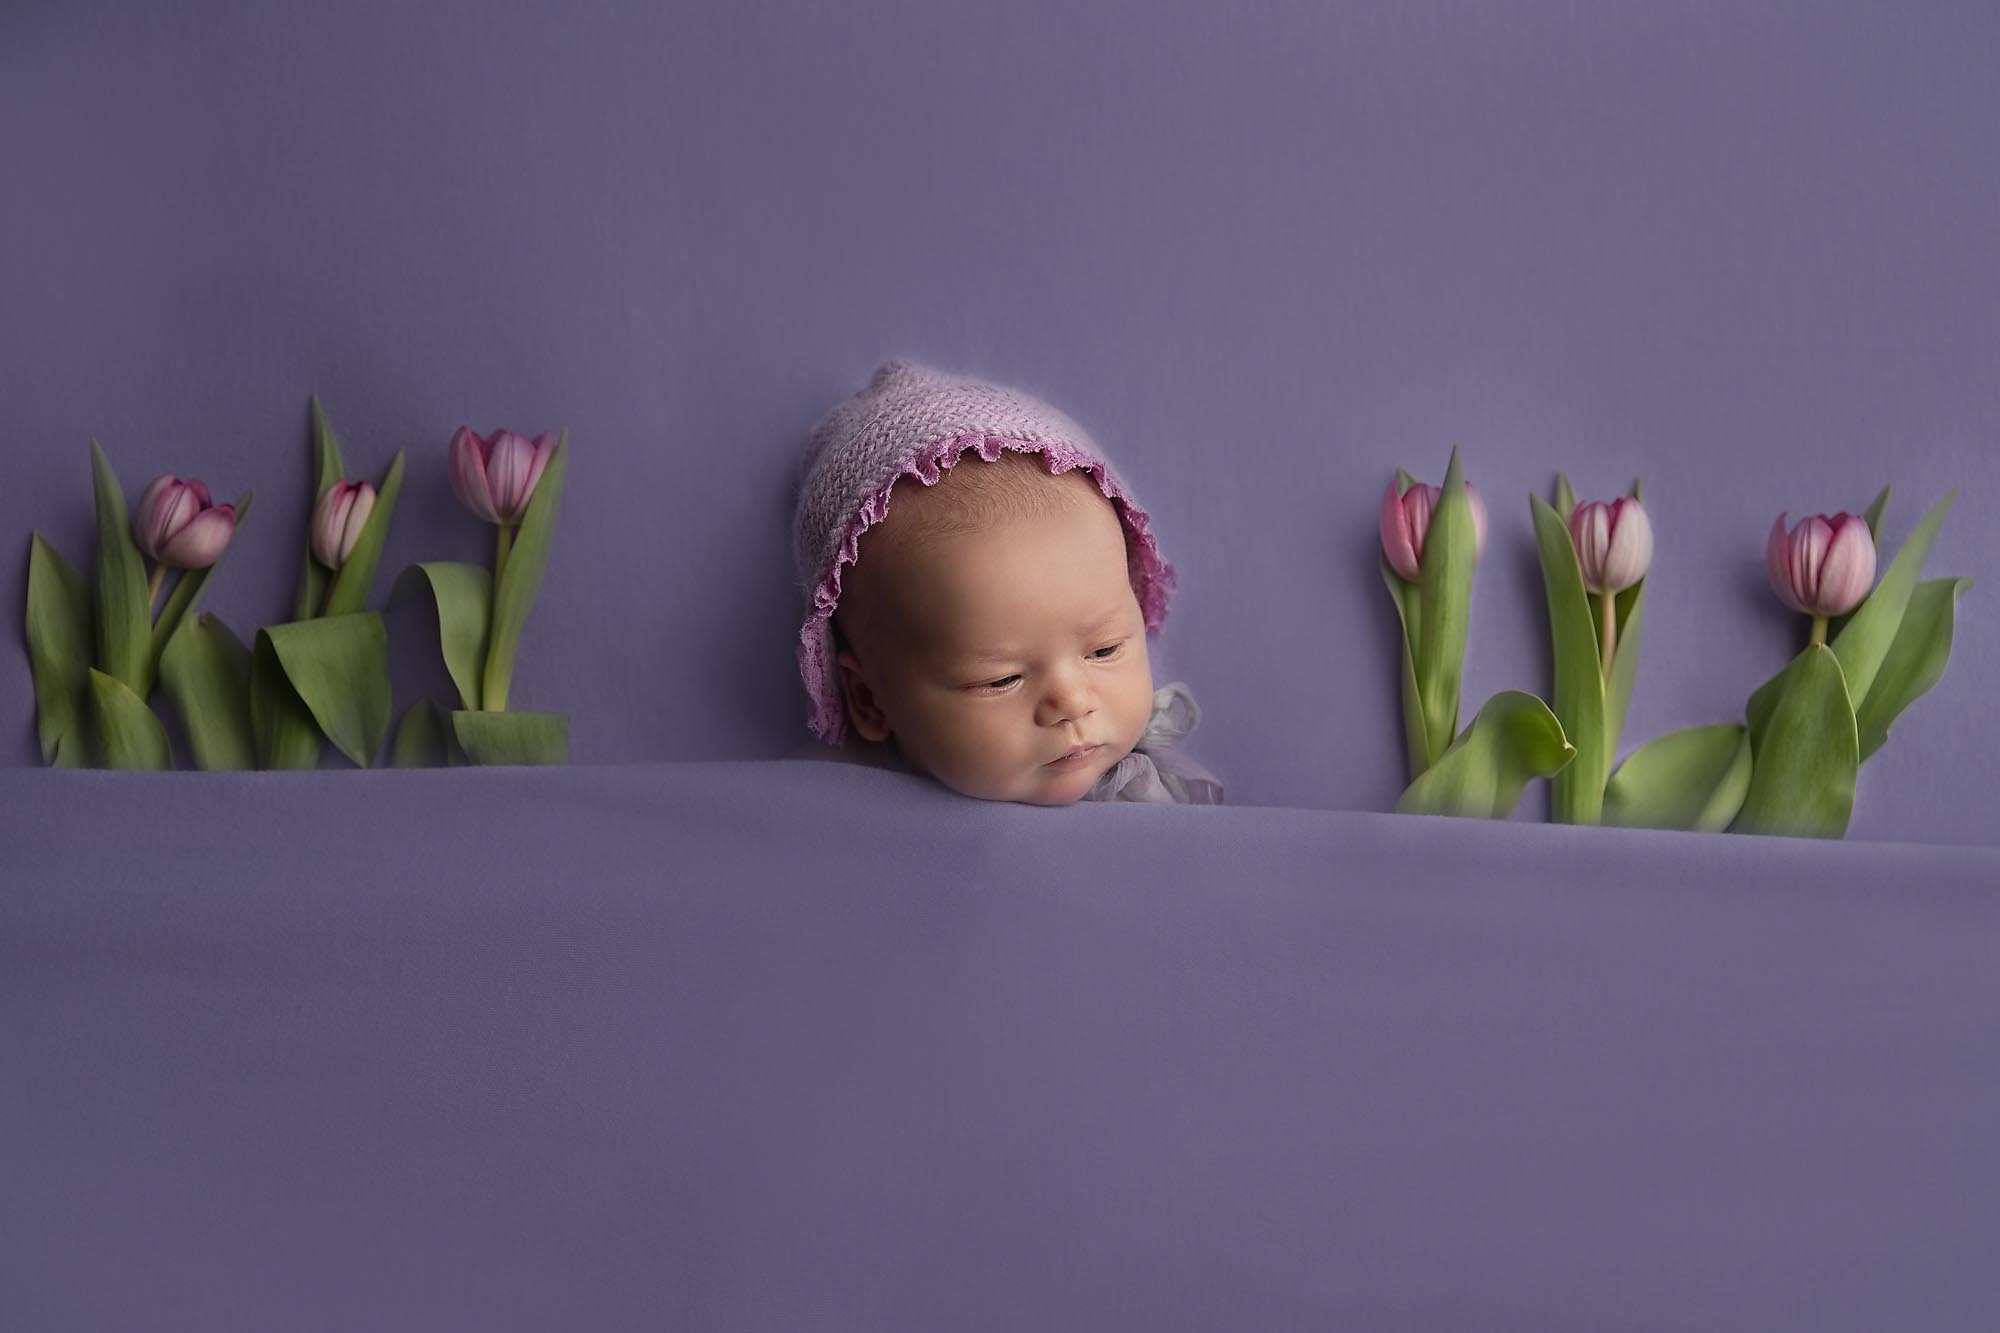 newborn baby with tulips taken by newborn photography Manchester